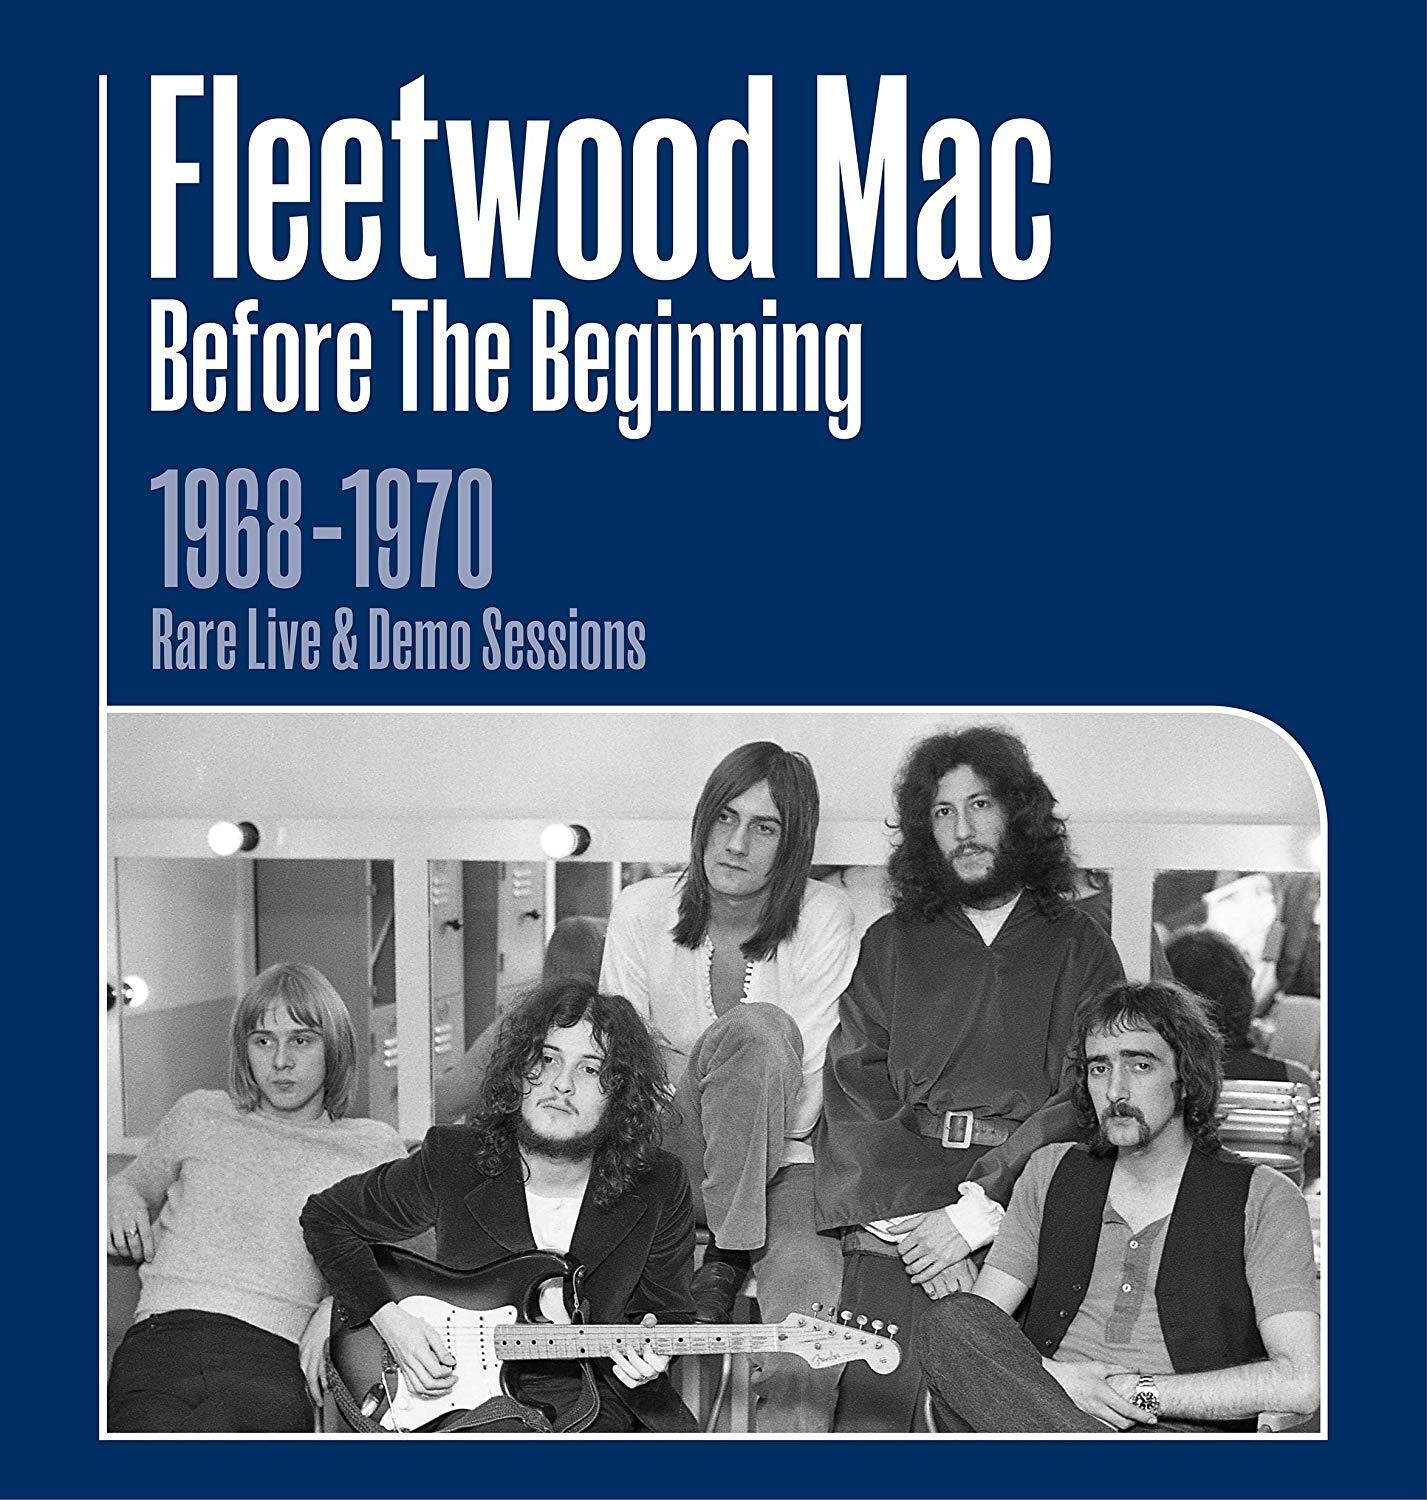 Fleetwood Mac - Before the Beginning 1968 - 1970 Live and Demo Sessions